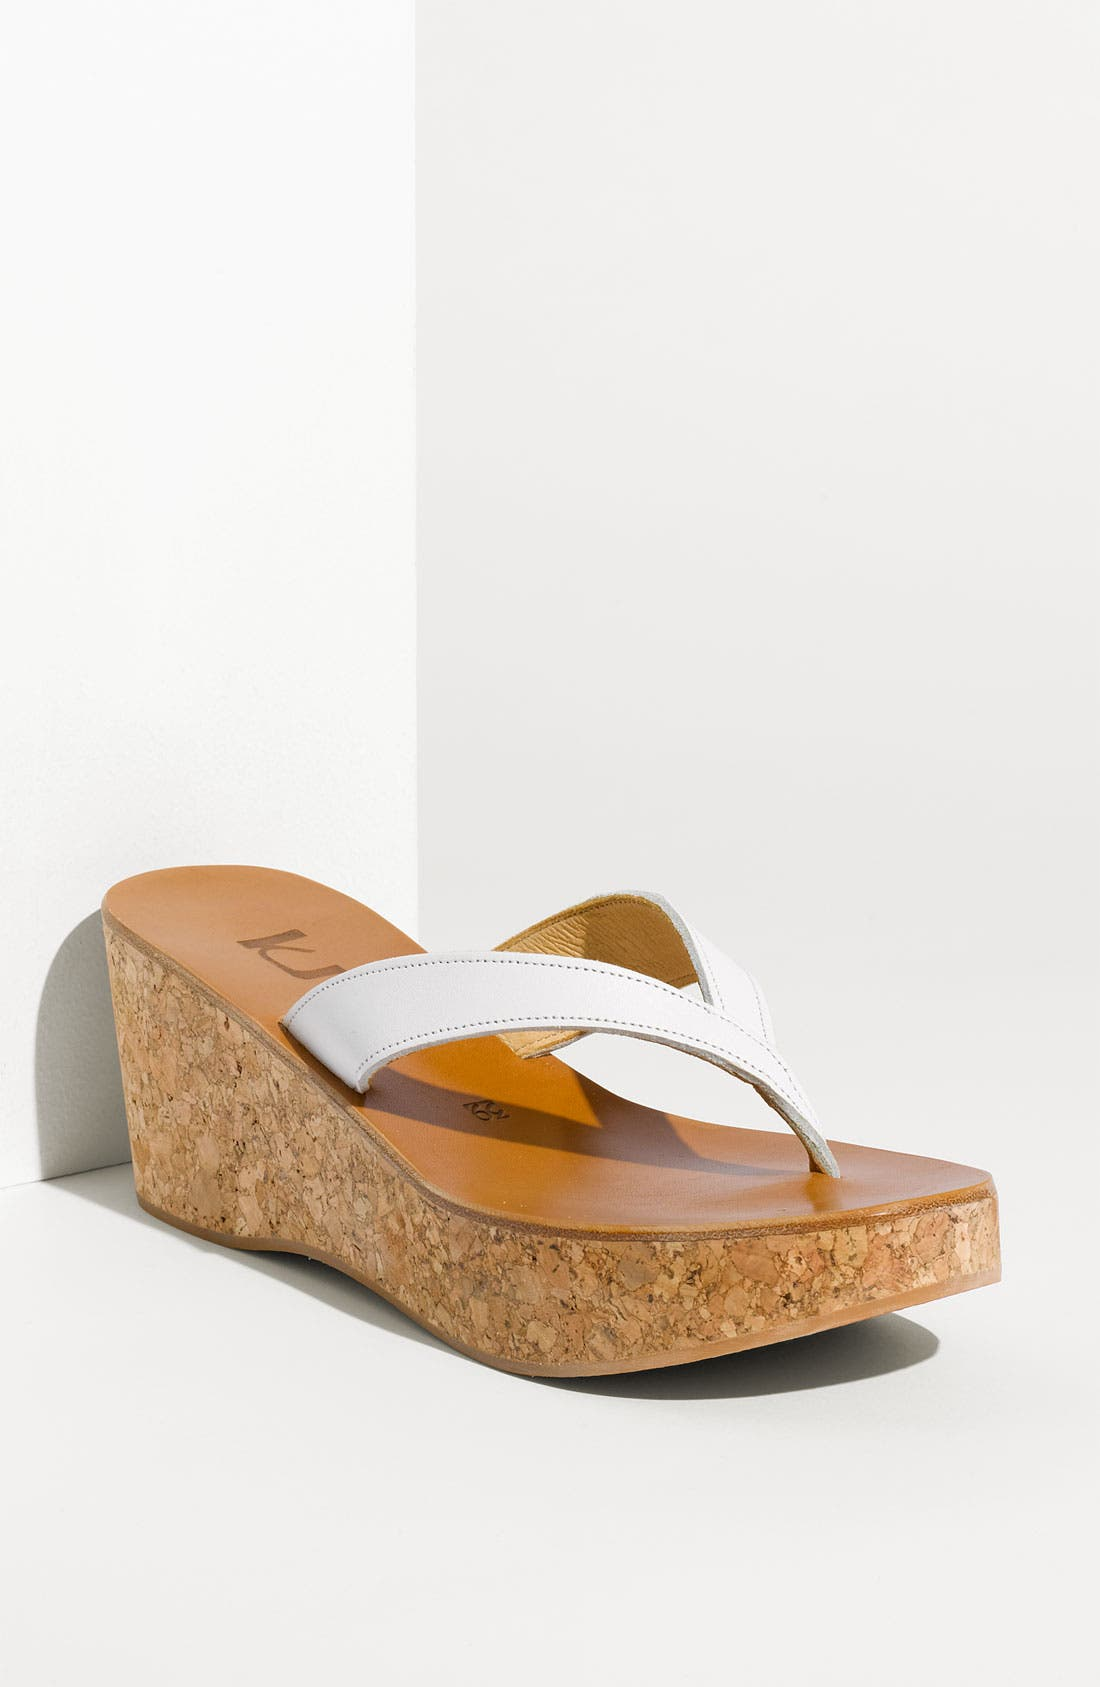 Alternate Image 1 Selected - K.Jacques St. Tropez 'Diorite' Wedge Sandal